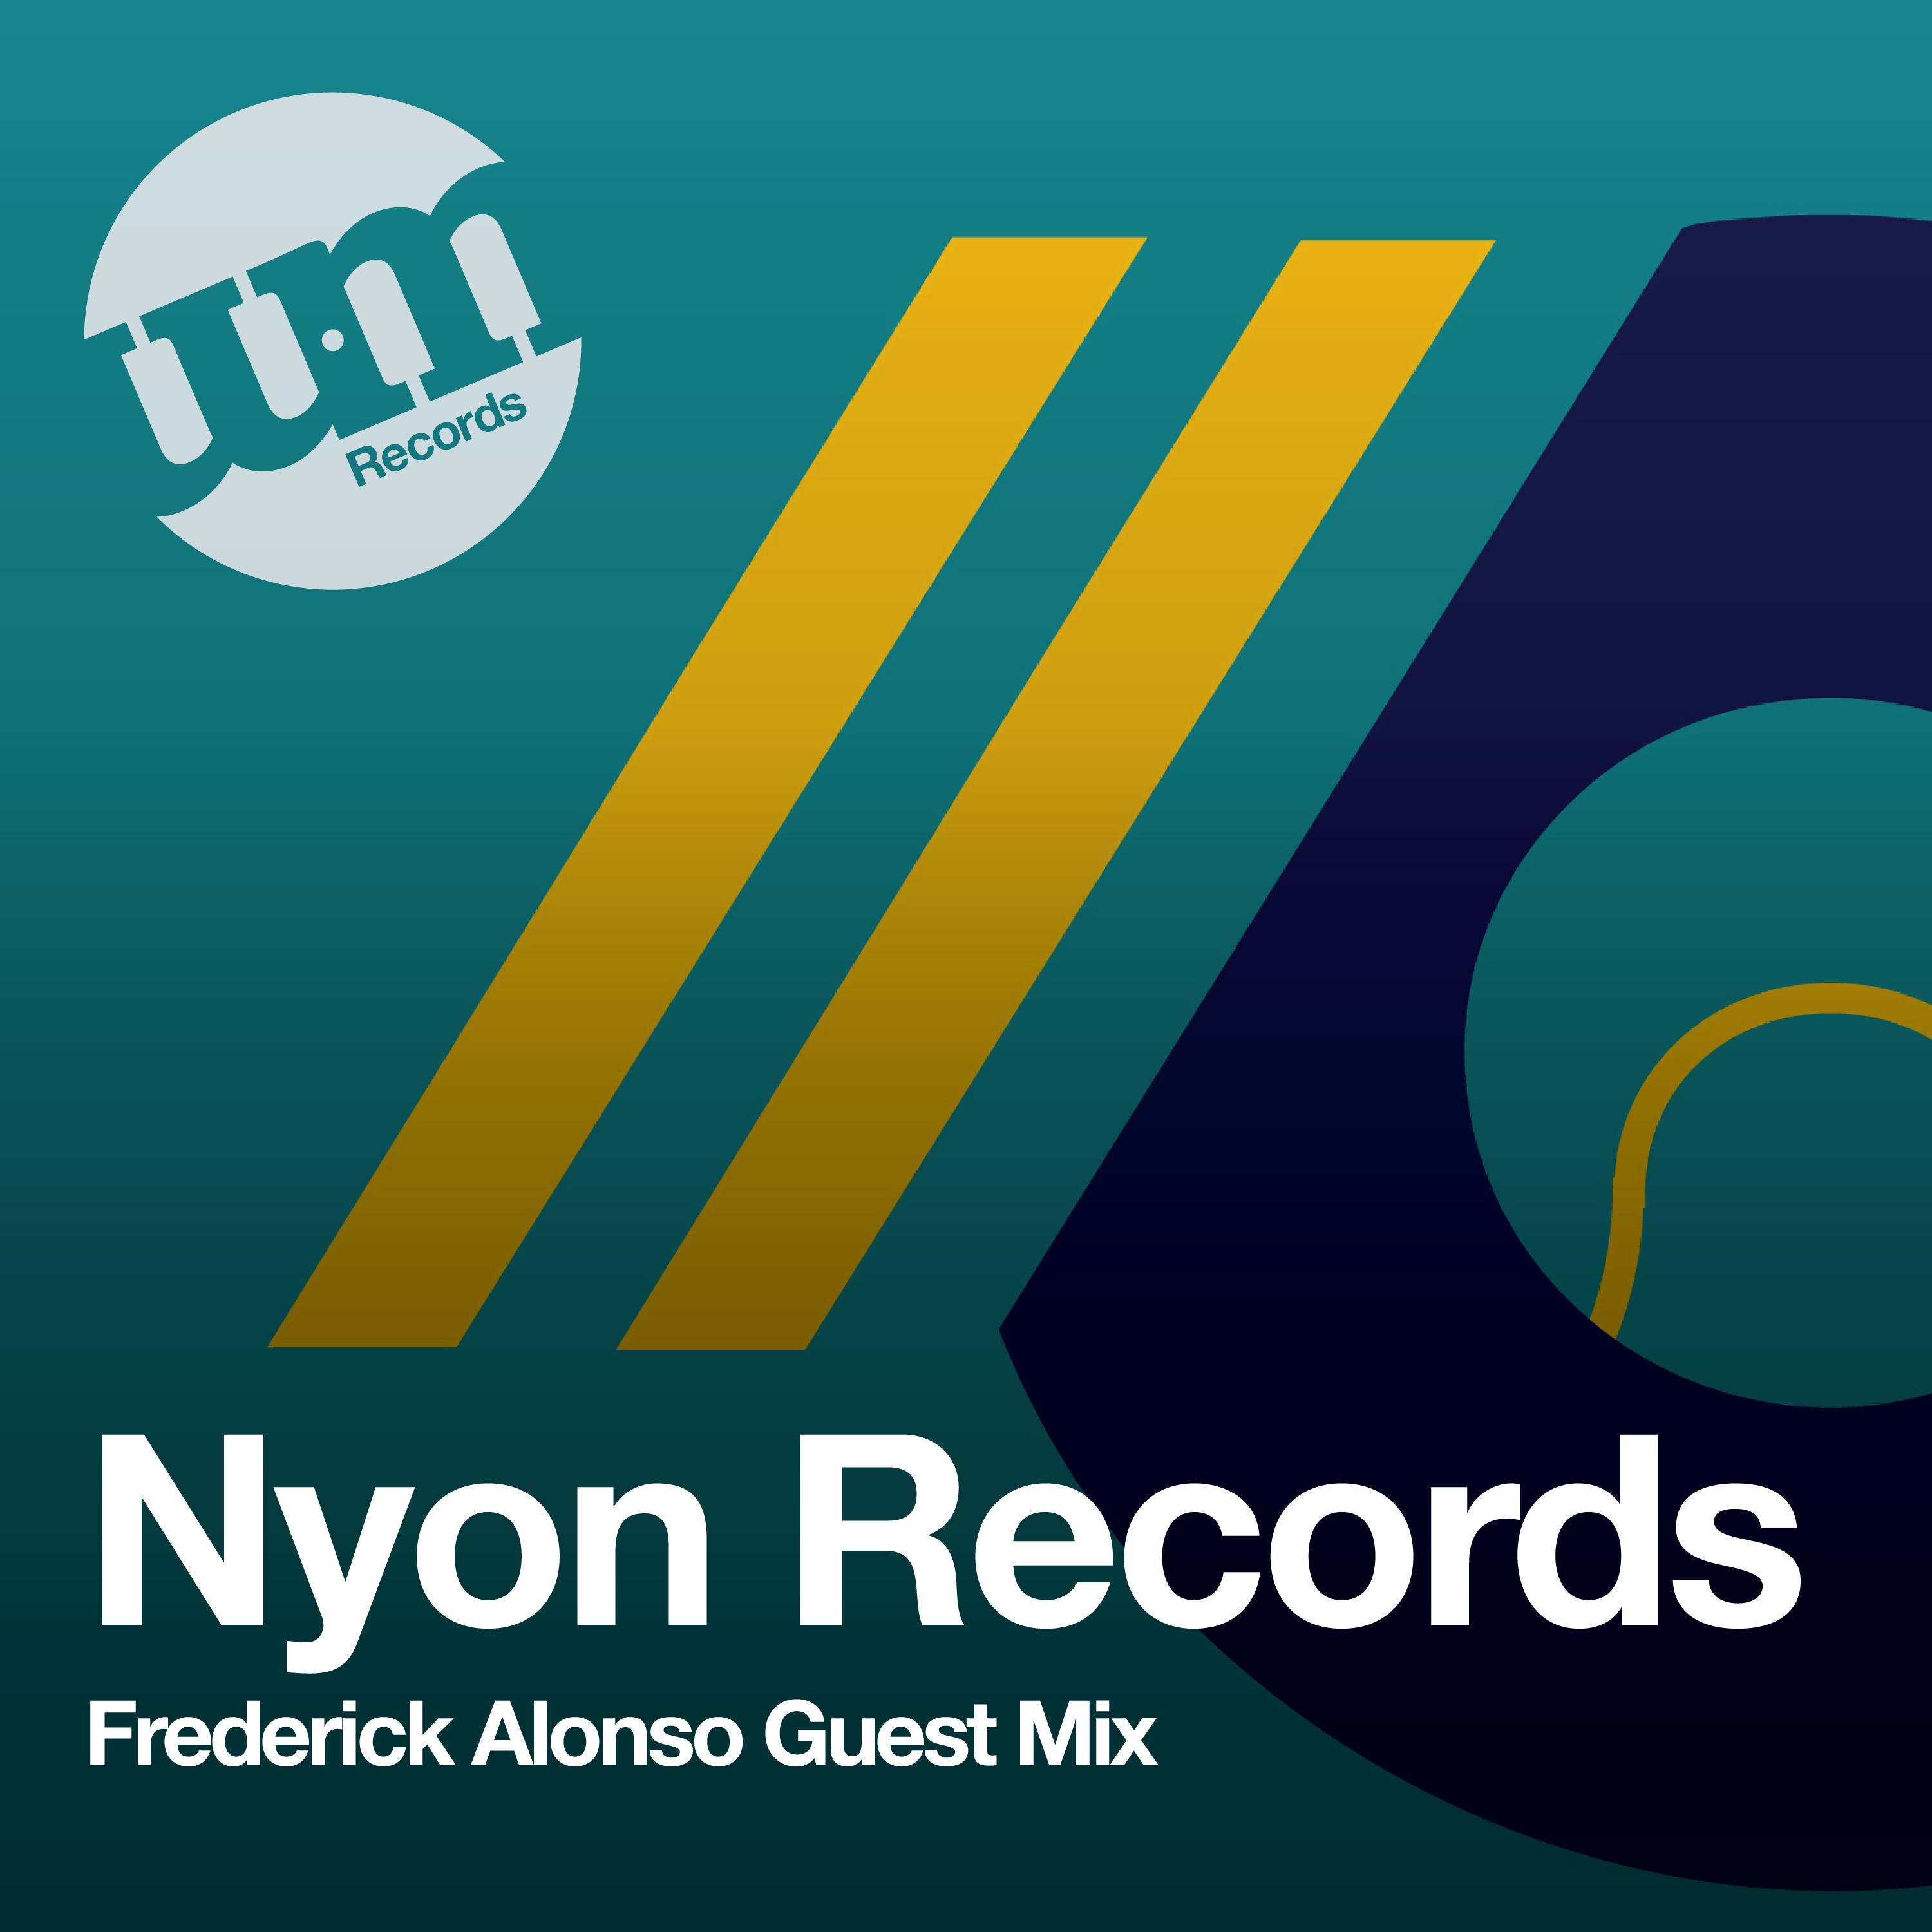 Nyon Records (Mixed by Frederick Alonso) - UM Guest Mix - (15.04.20)